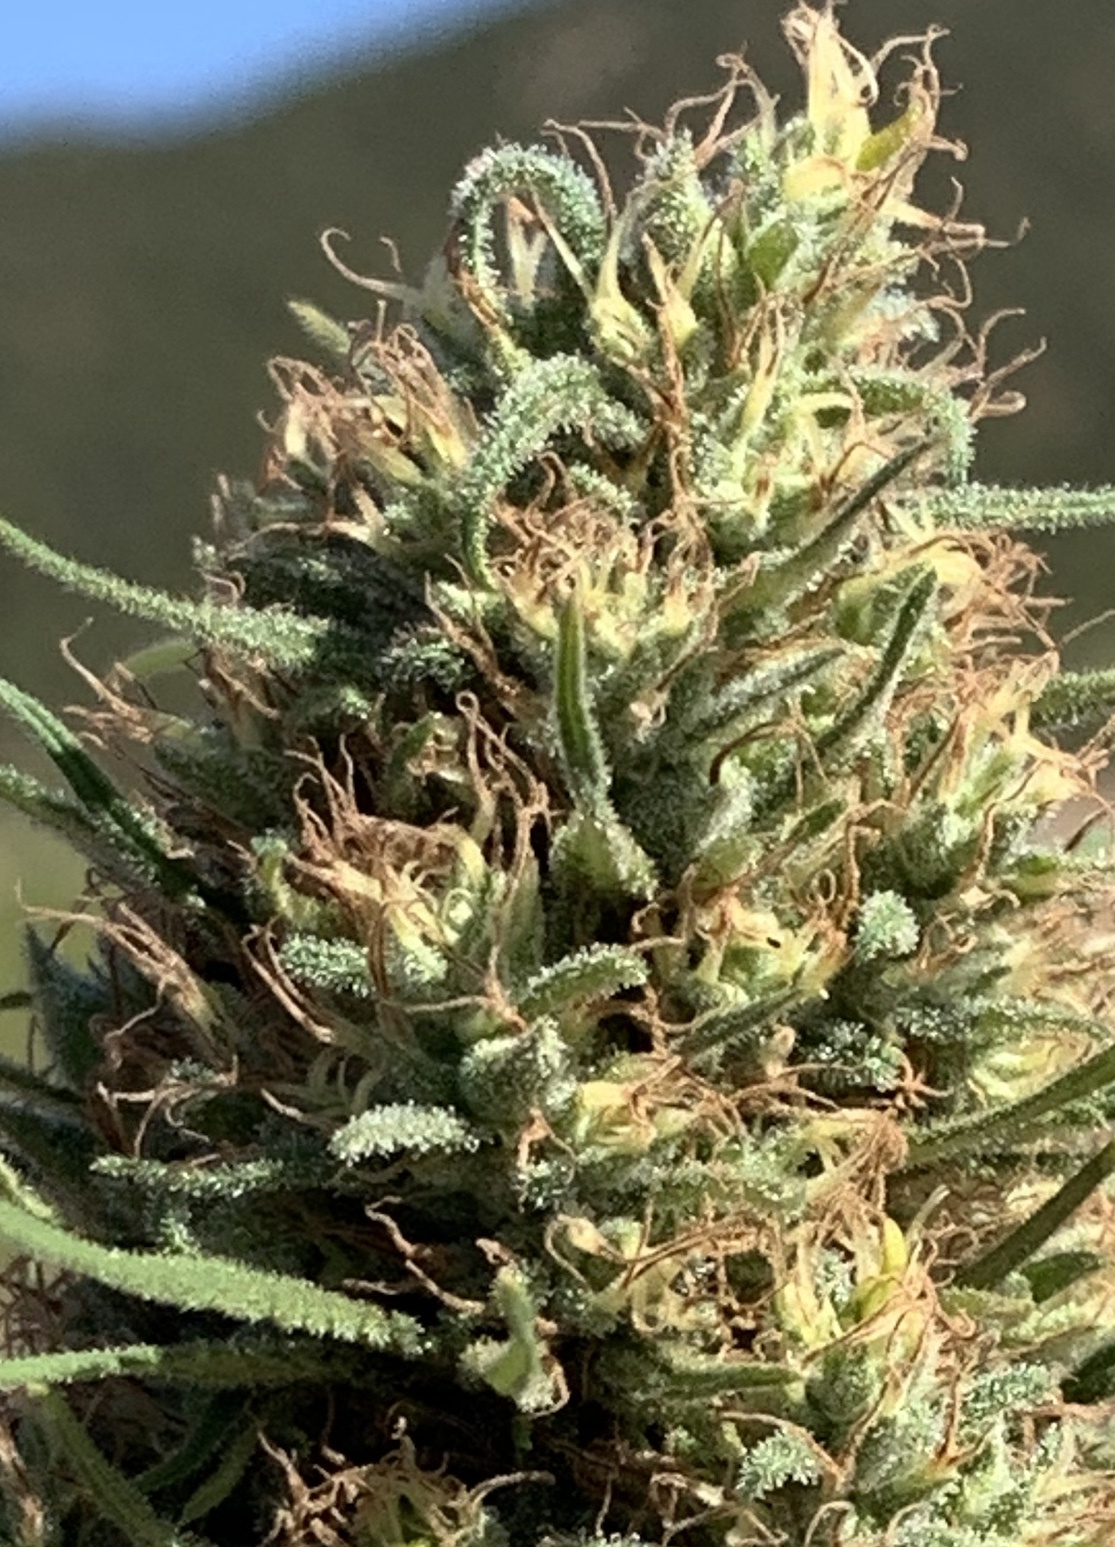 applejack-cbd-hemp-seeds-Bpic